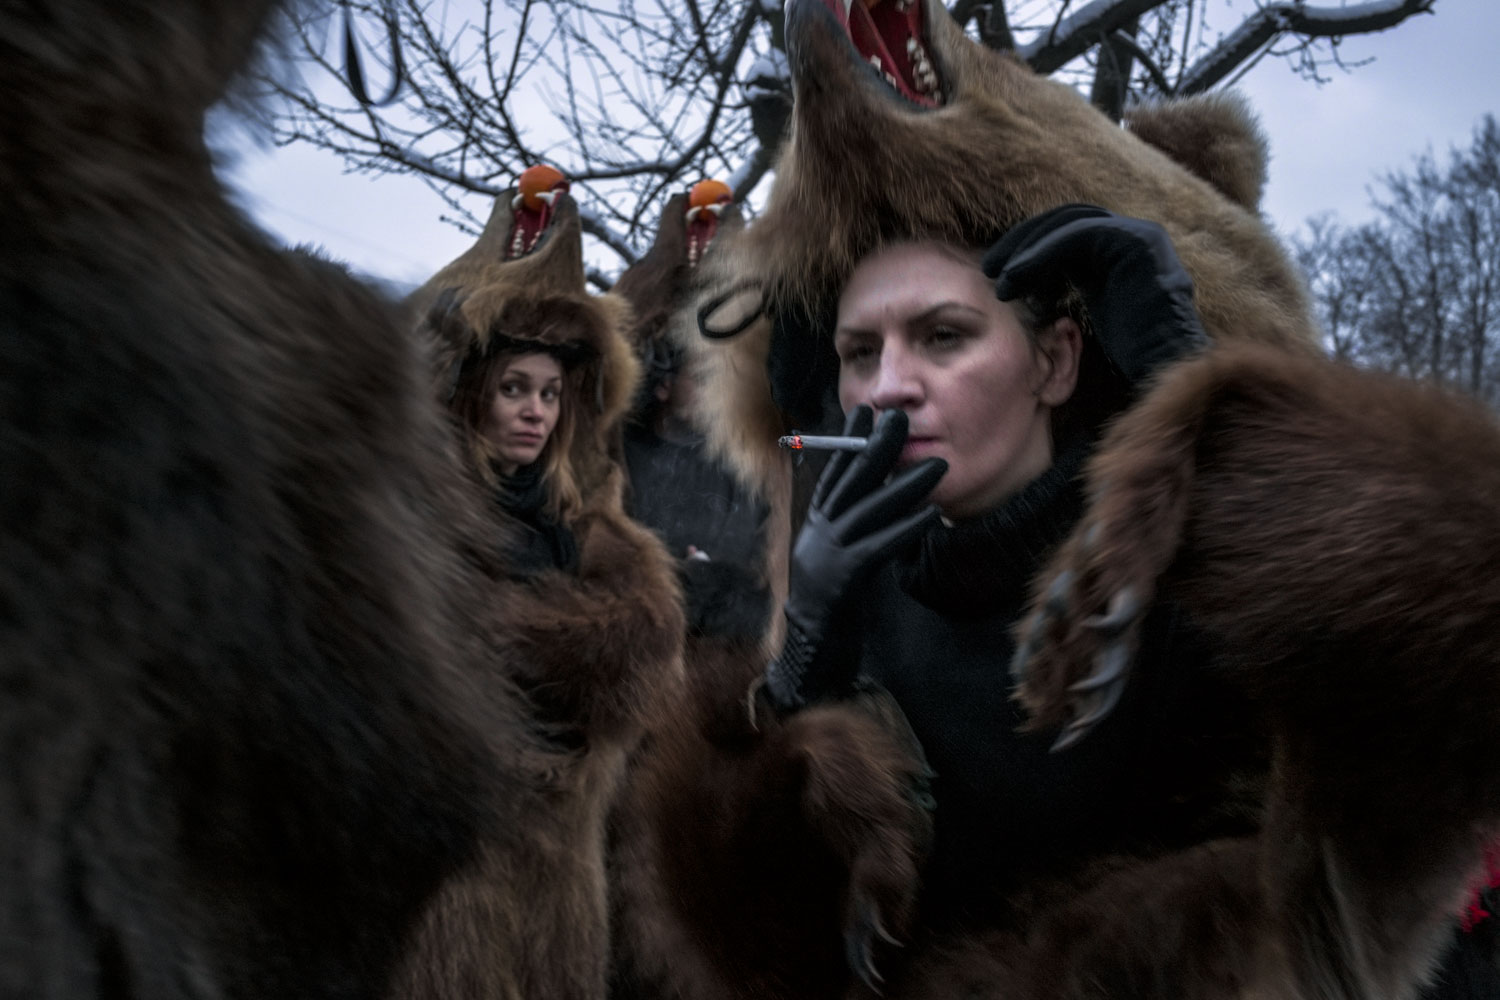 Troupes of bears from nearby towns and villages gather in Moineşti during the town's annual Bear Parade. Although in the minority, lady bears can be found in nearly every troupe. December 27, 2014. Moineşti town, Bacău county, Romania.